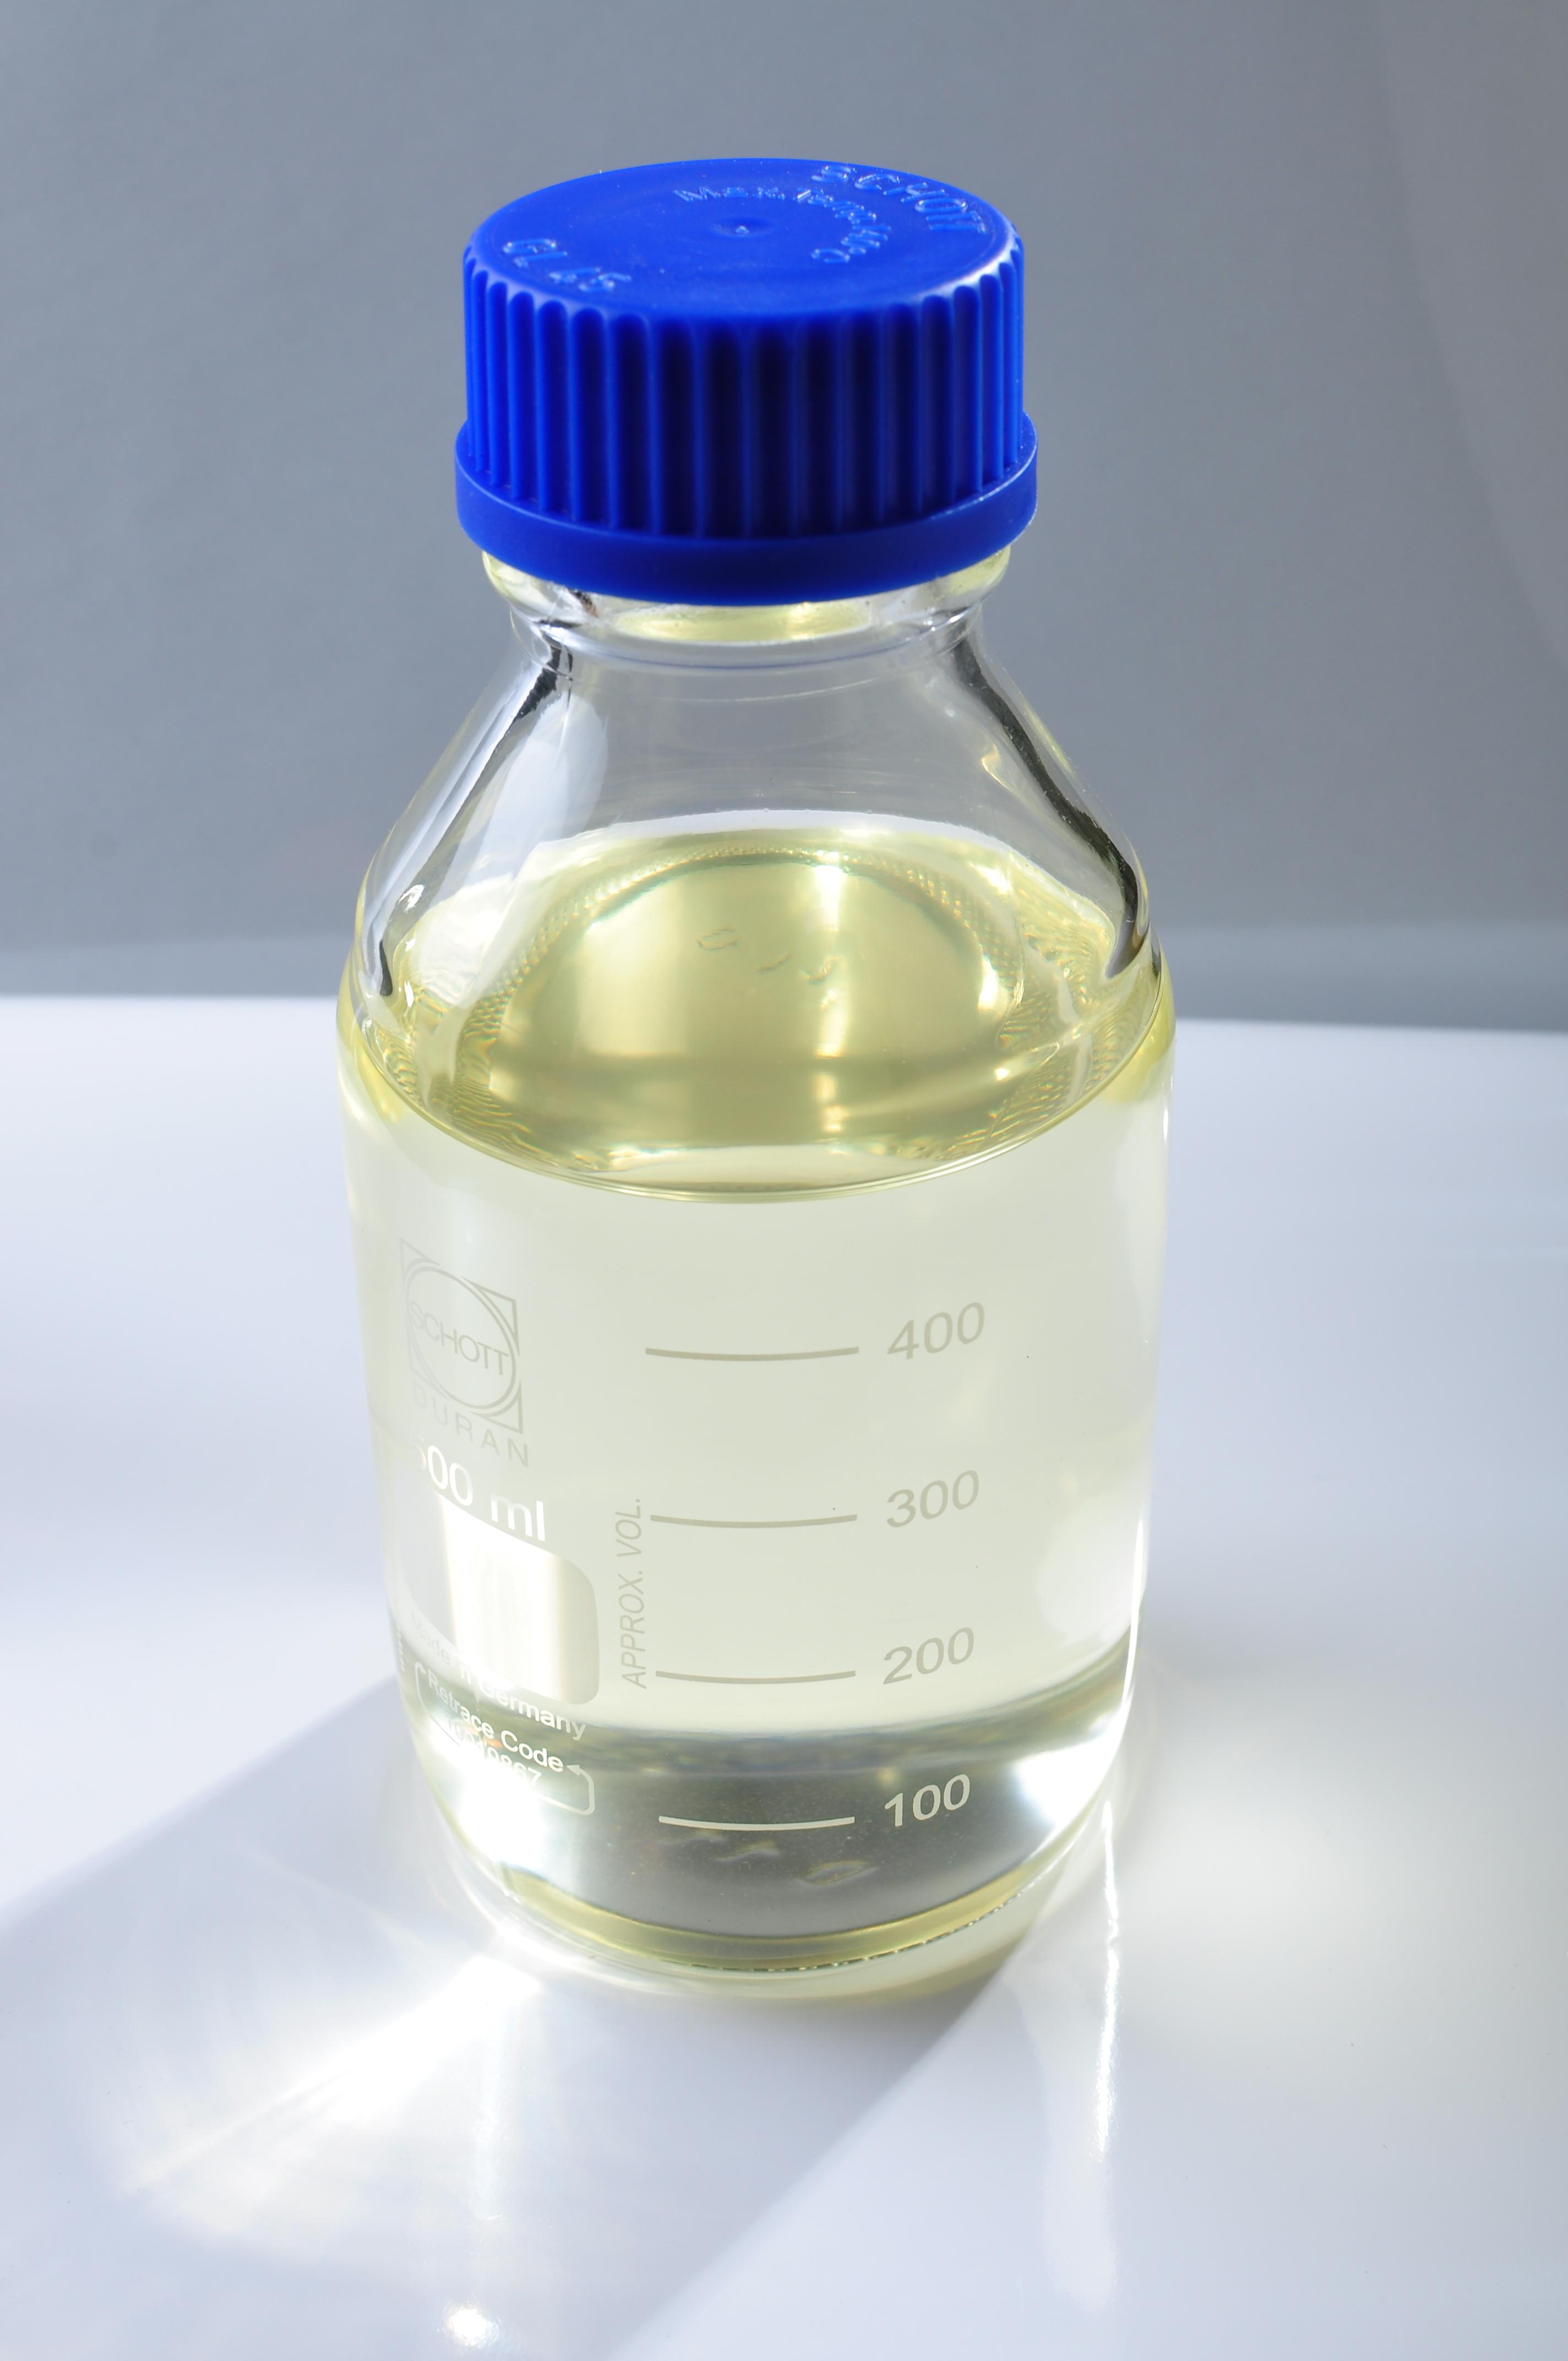 textile auxiliary methyl oleate 99%